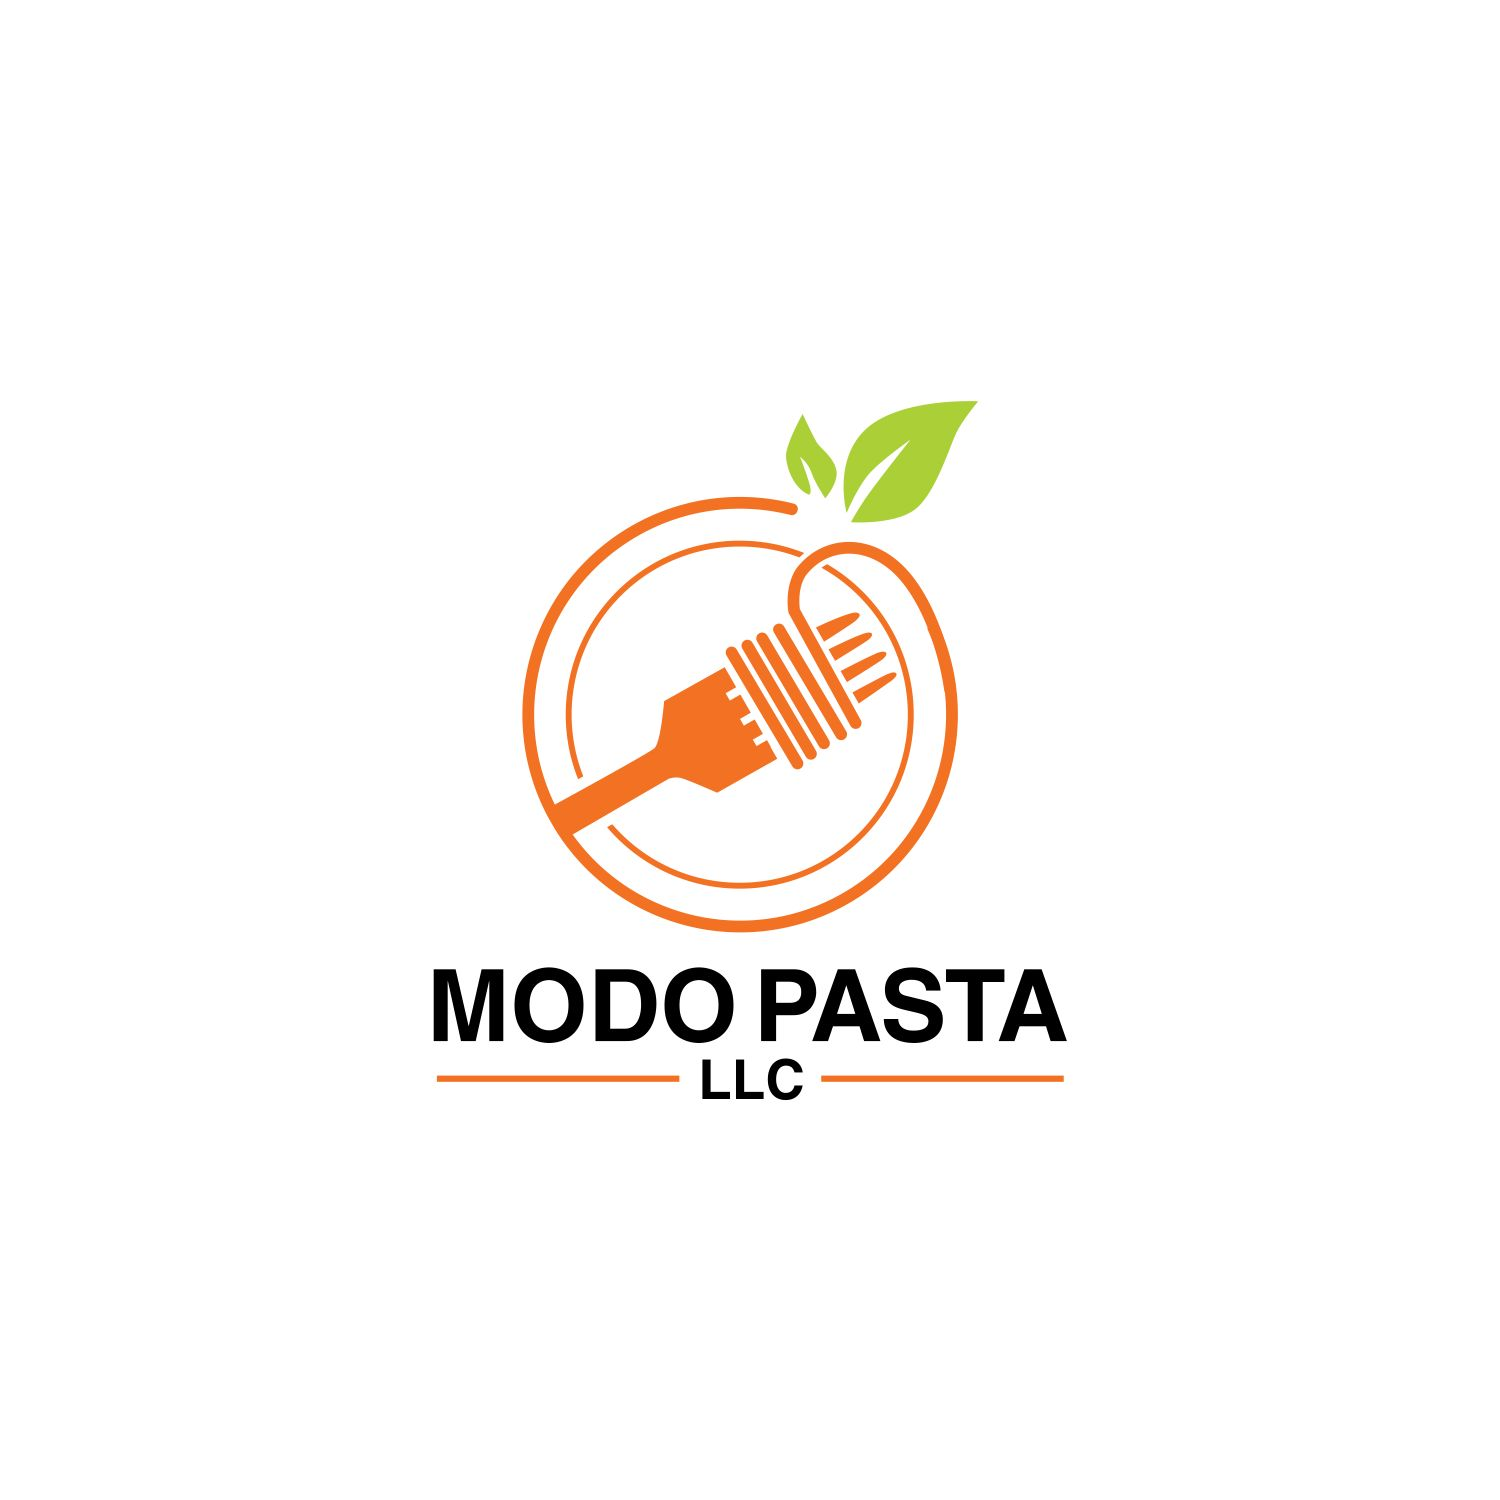 Bold Modern Fast Food Restaurant Logo Design For Modo Pasta Llc By Preatyboymaulana Design 18883360